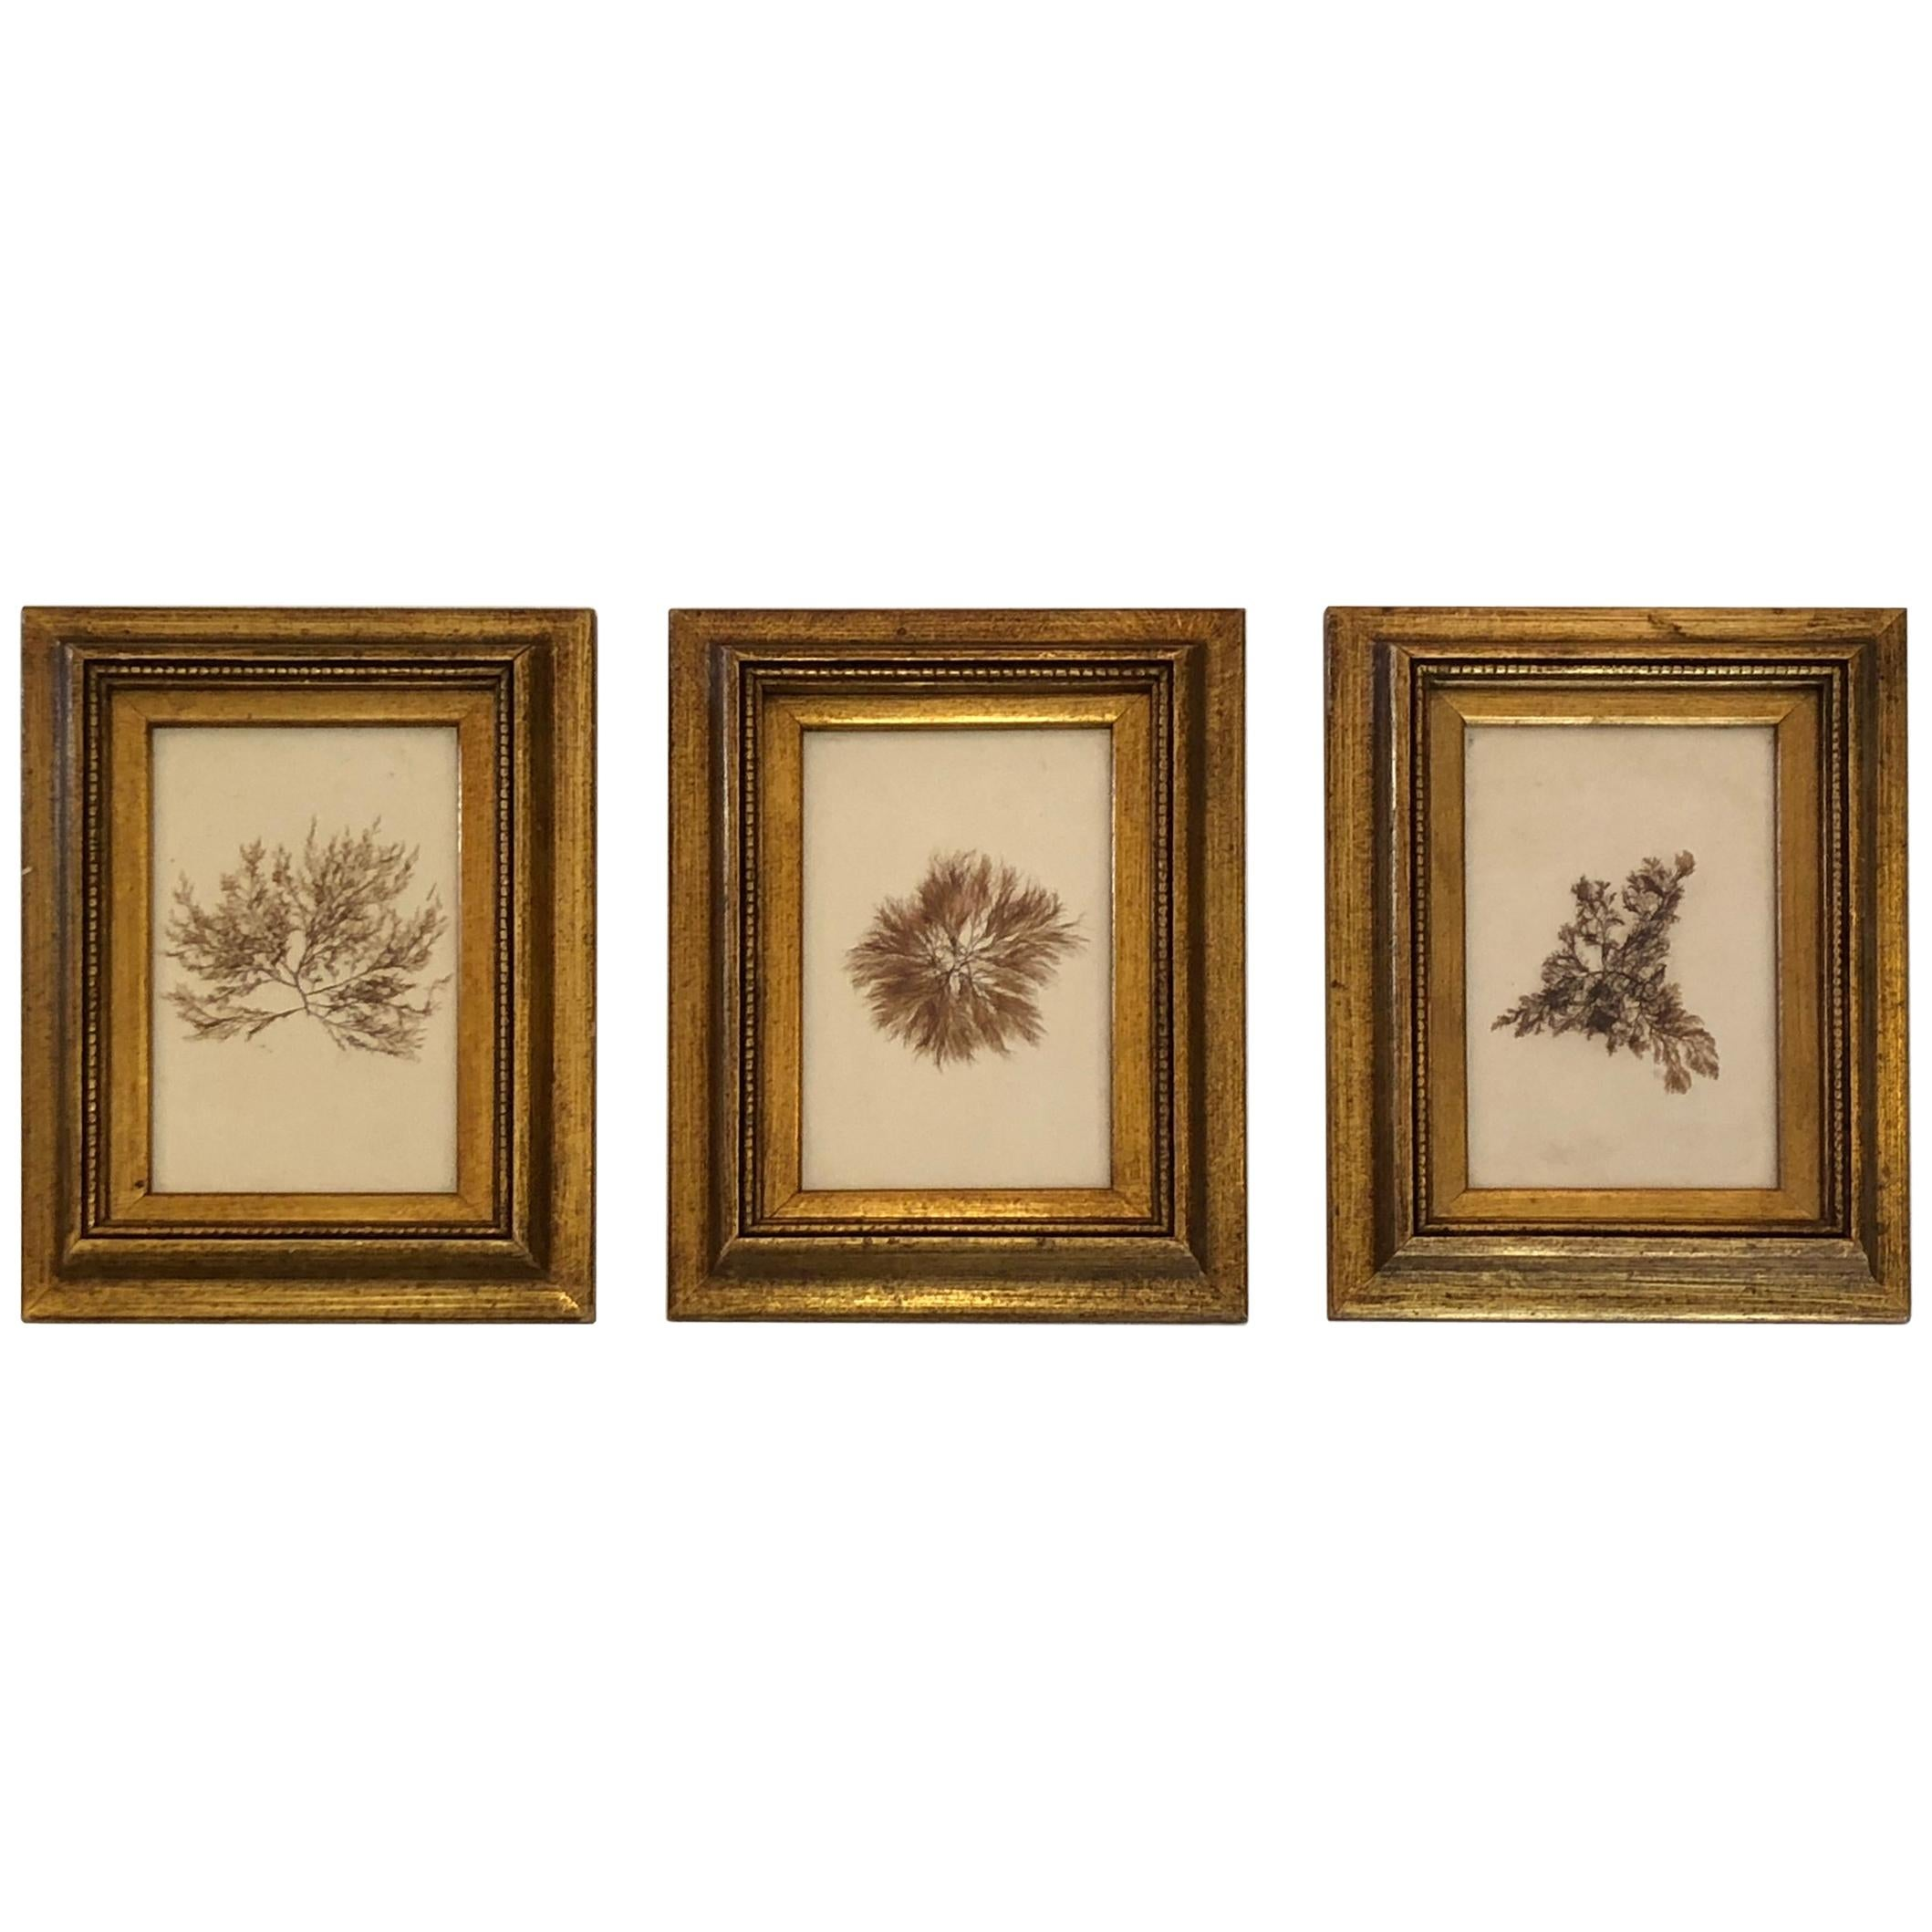 Gorgeous Trio of 19th Century Pressed Organic Botanicals in Giltwood Frames